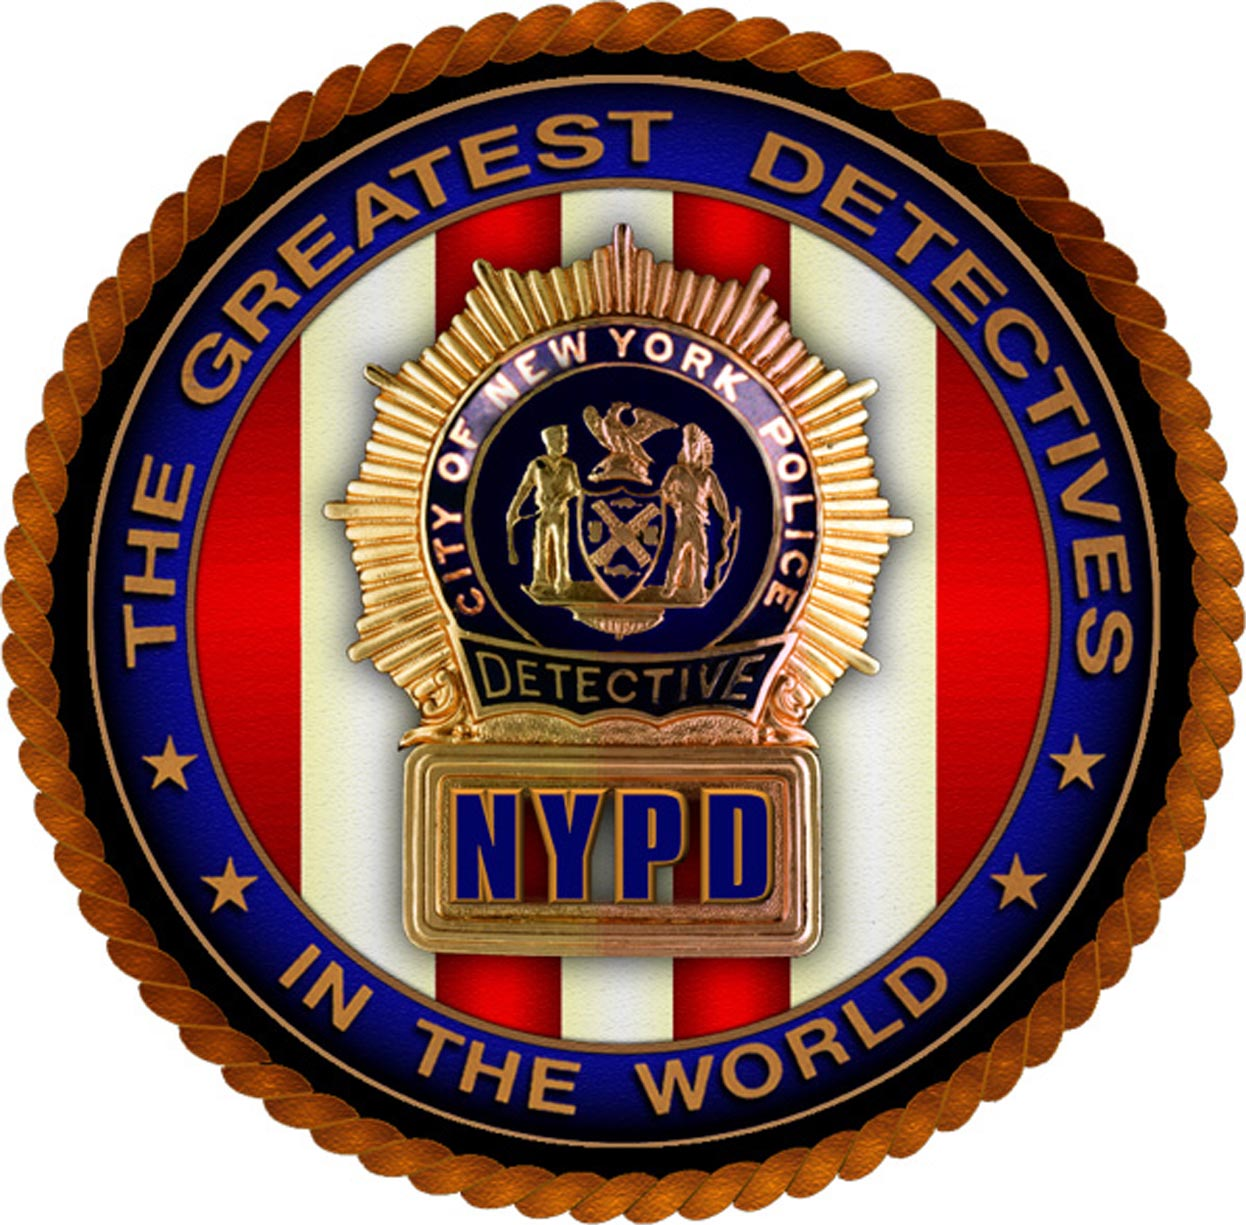 NYPD New York Police Organized Crime Tax Fraud * SUPER*COP